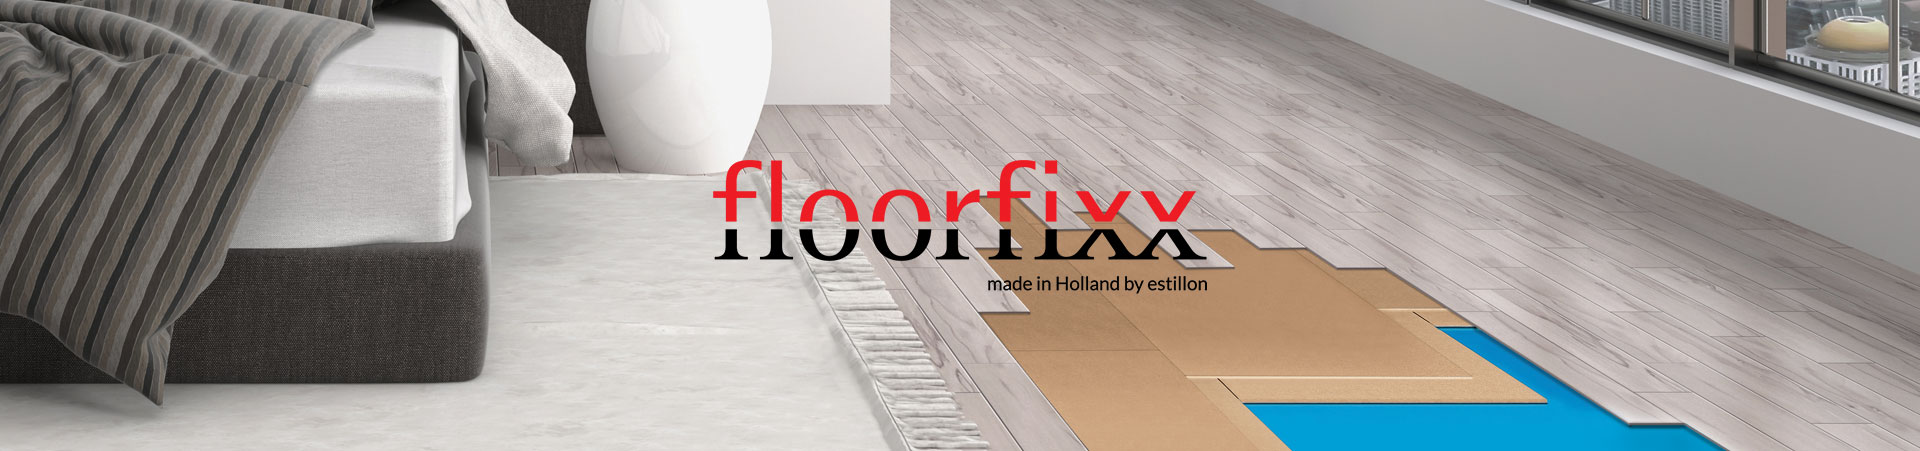 Floorfixx underlays